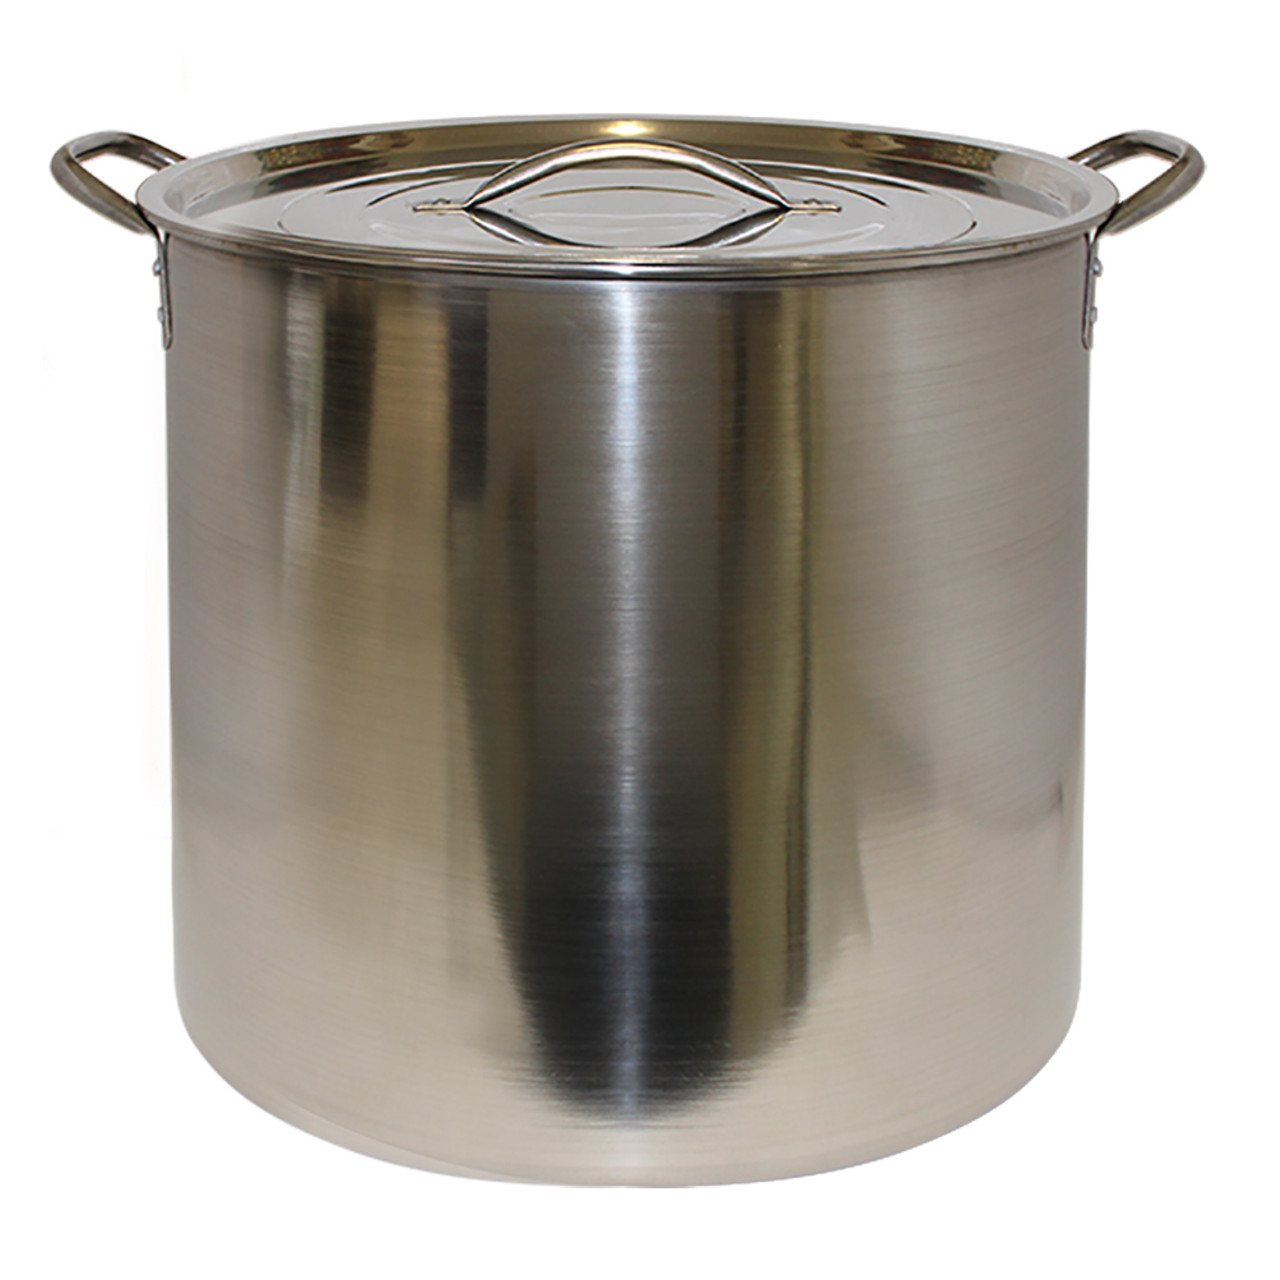 Brew Kettle With Cover Stainless Steel 20 Qt Home Brew Ohio